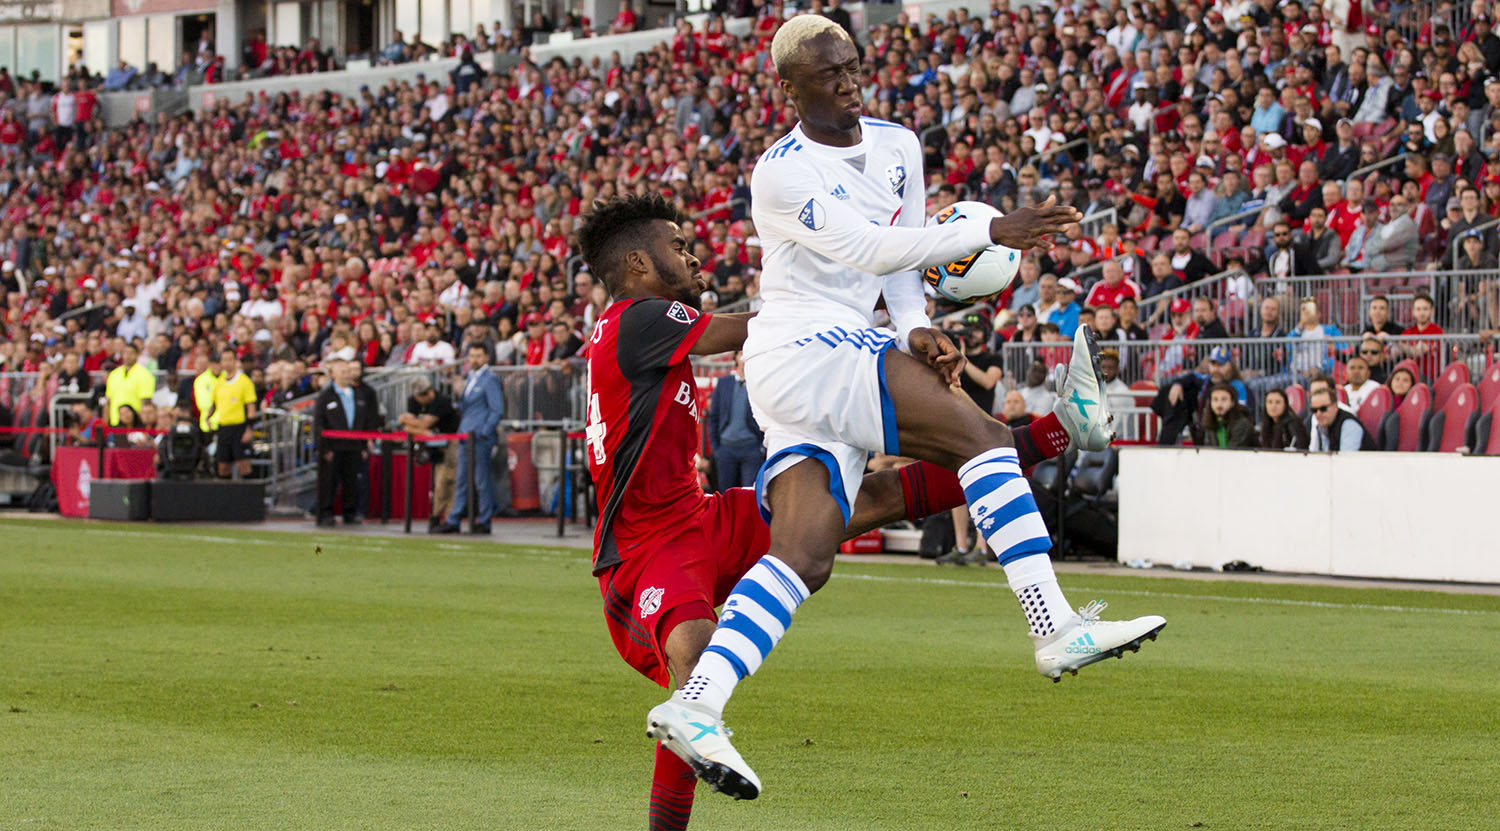 Toronto FC and Montreal Impact clash during a match for the Voyageur's cup in 2017.Image by Dennis Marciniak of denMAR Media.